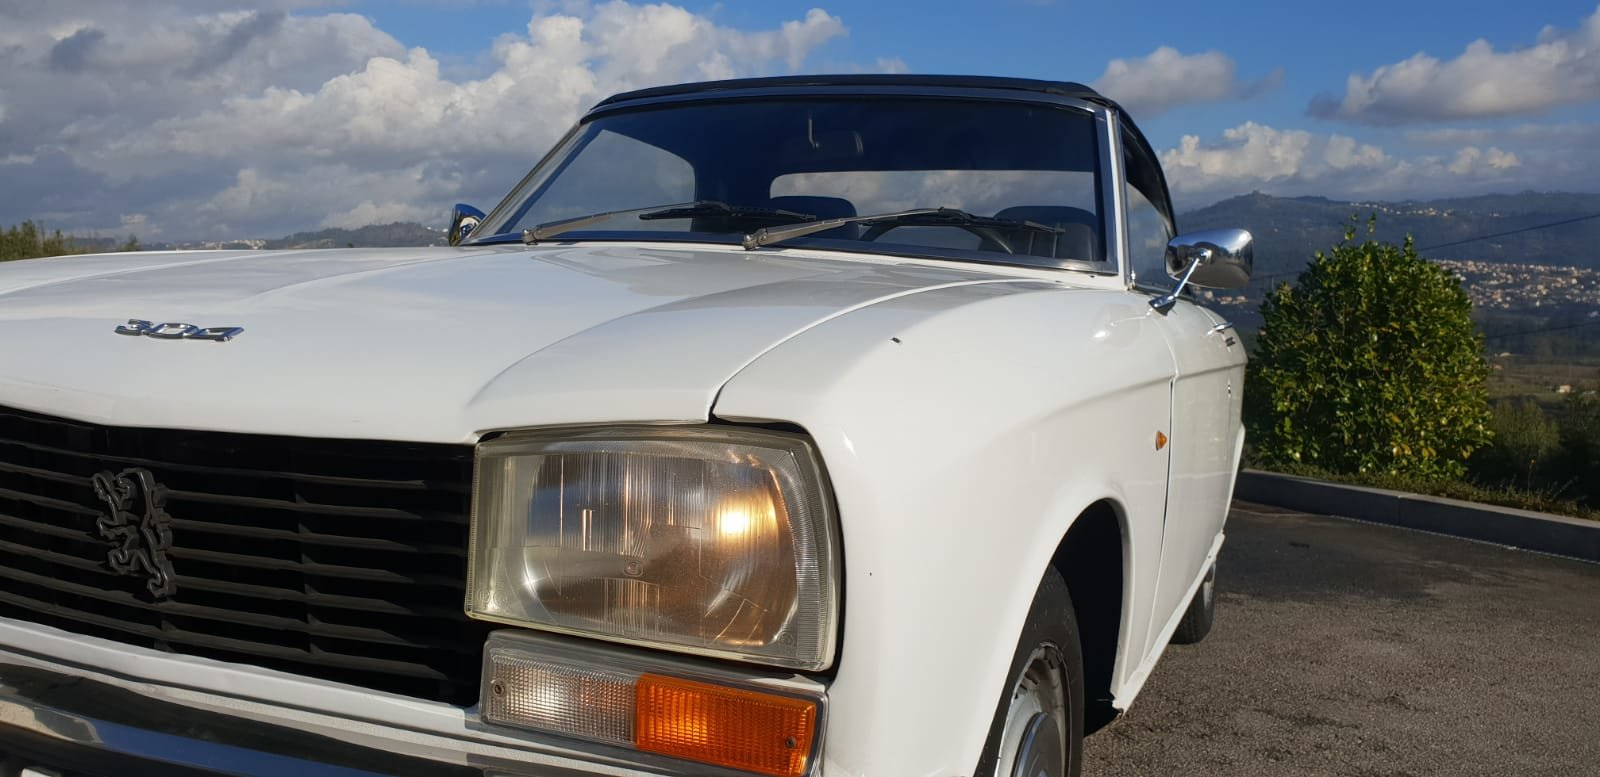 Peugeot 304 Cabrio - 1973 For Sale (picture 6 of 6)